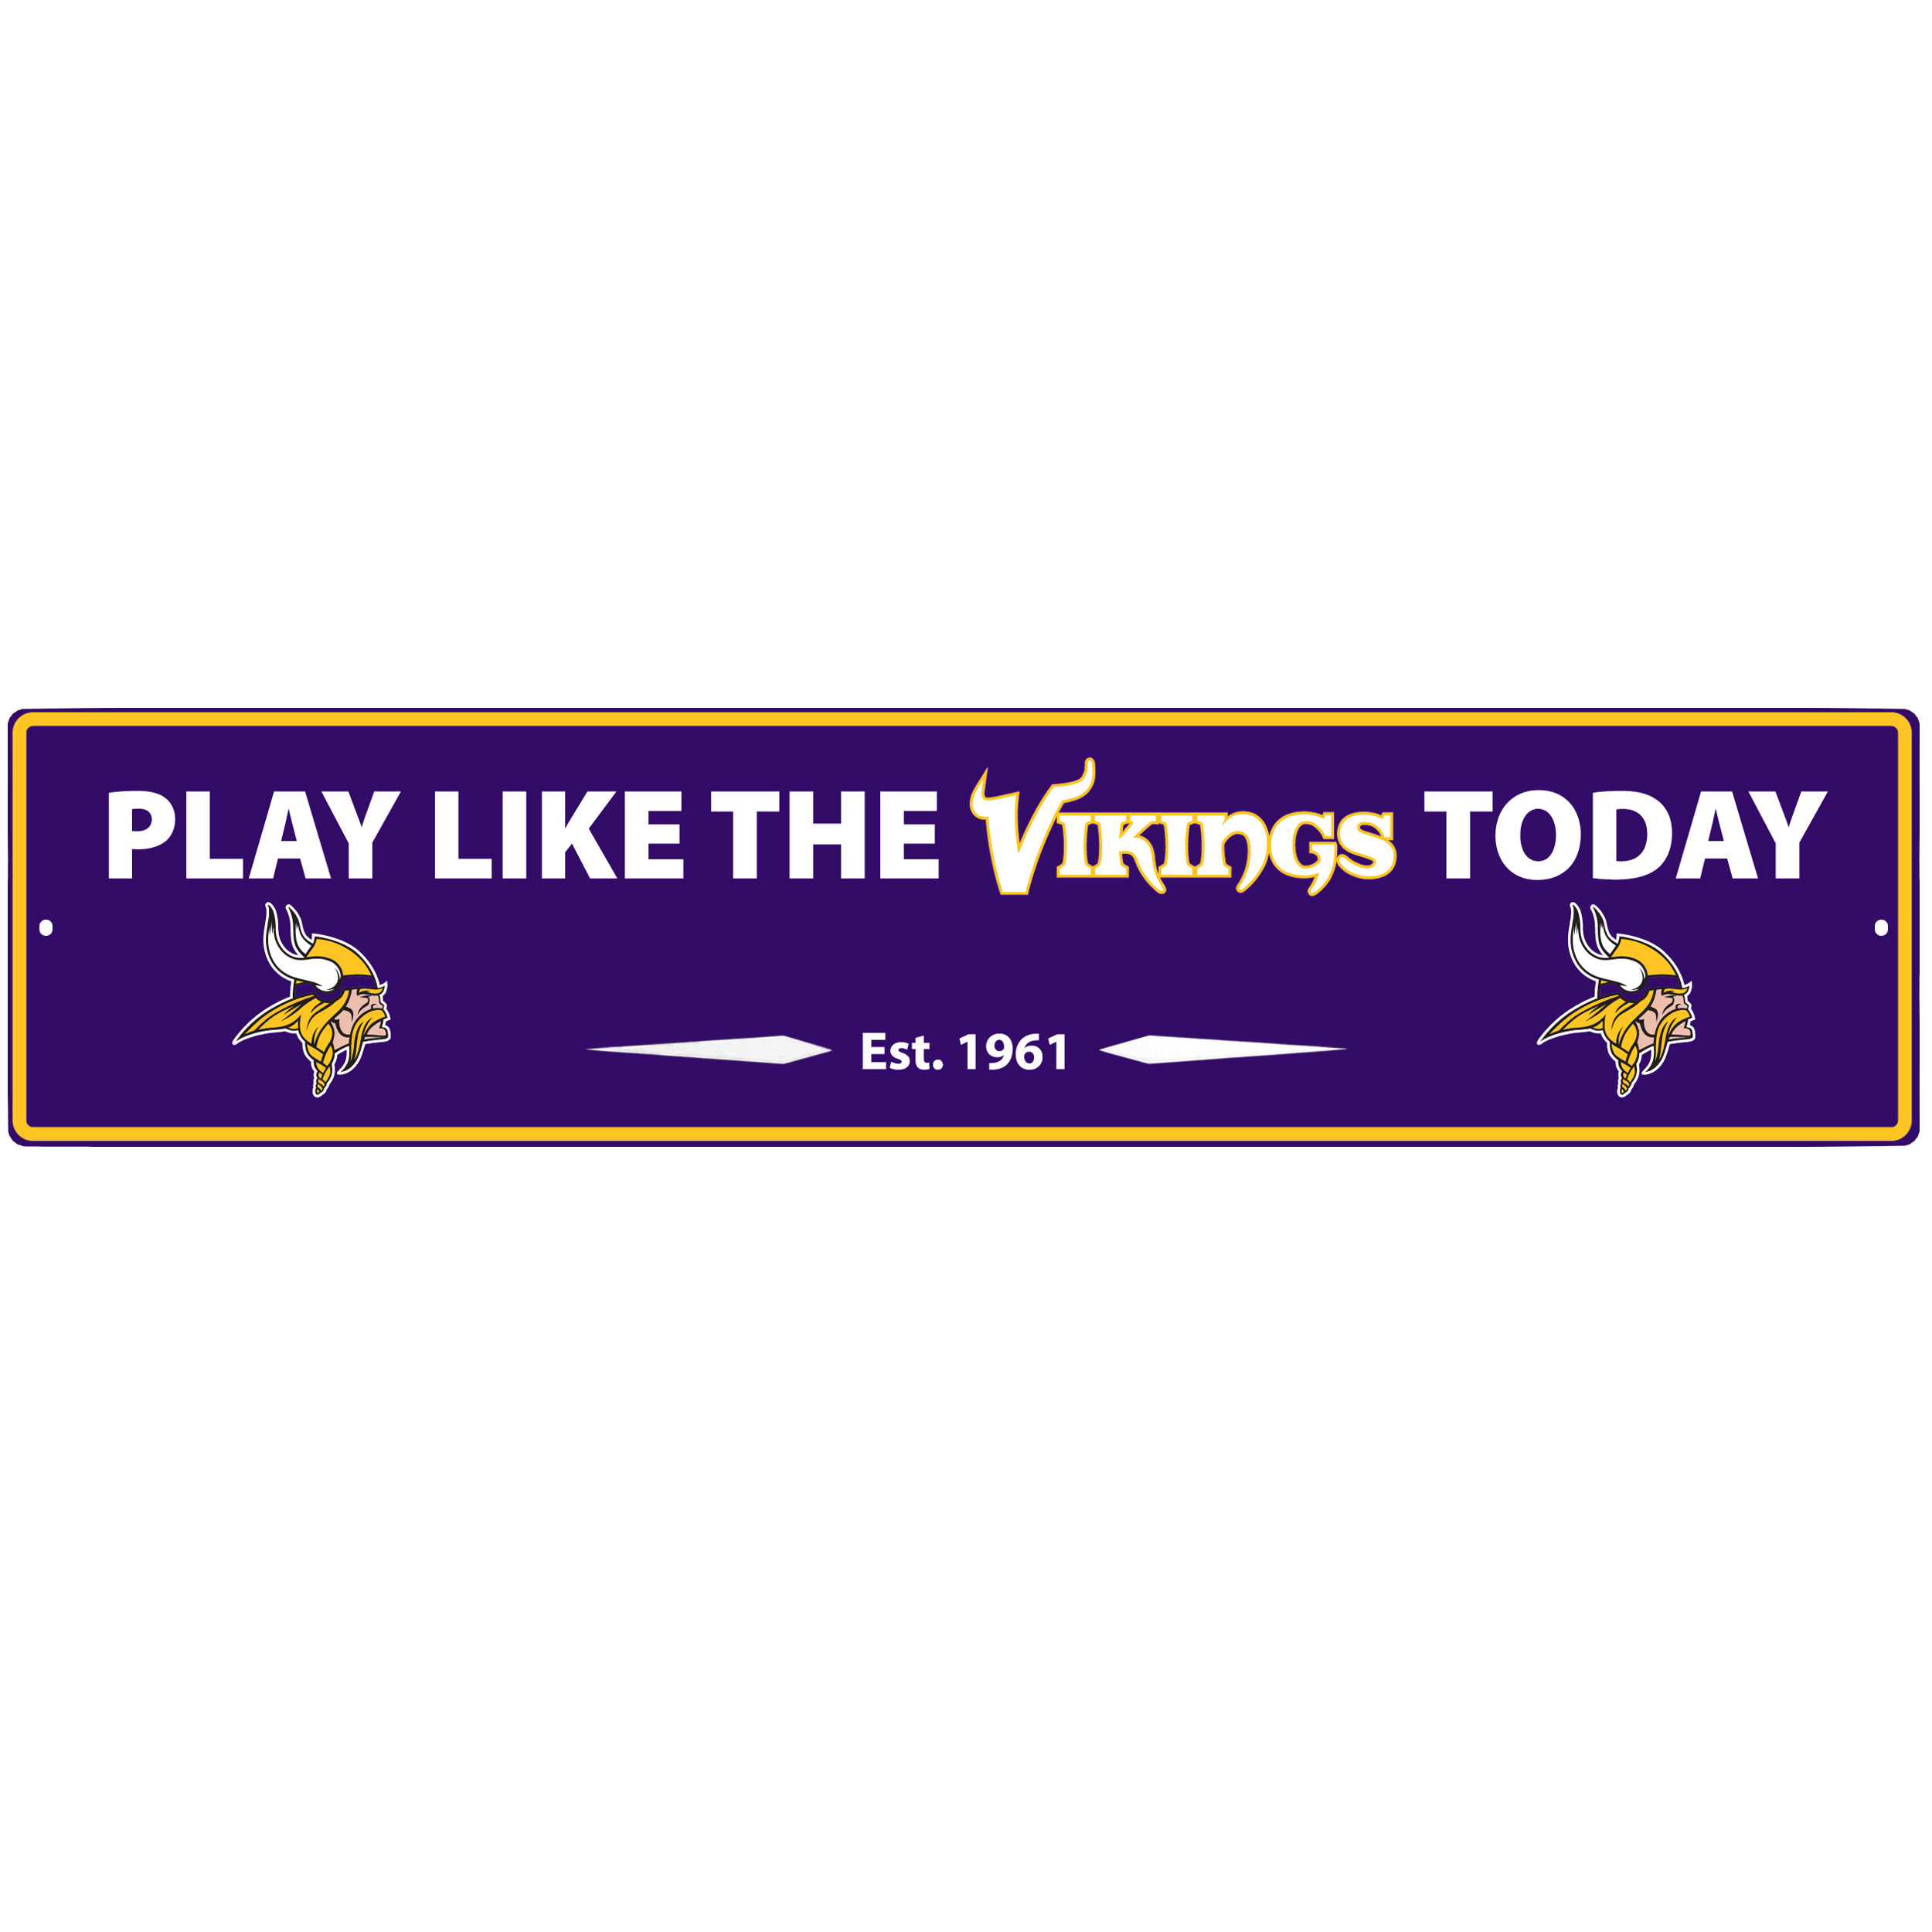 Minnesota Vikings Street Sign Wall Plaque - This motivational plaque is perfect for hanging over the doorway of your fan cave reminding you to play like your champion Minnesota Vikings! The sign is 20 inches wide and made of light-weight stamped aluminum. The bright team colors and classic design make this a must-have home décor accessory that would look great in any game room, living room or office!